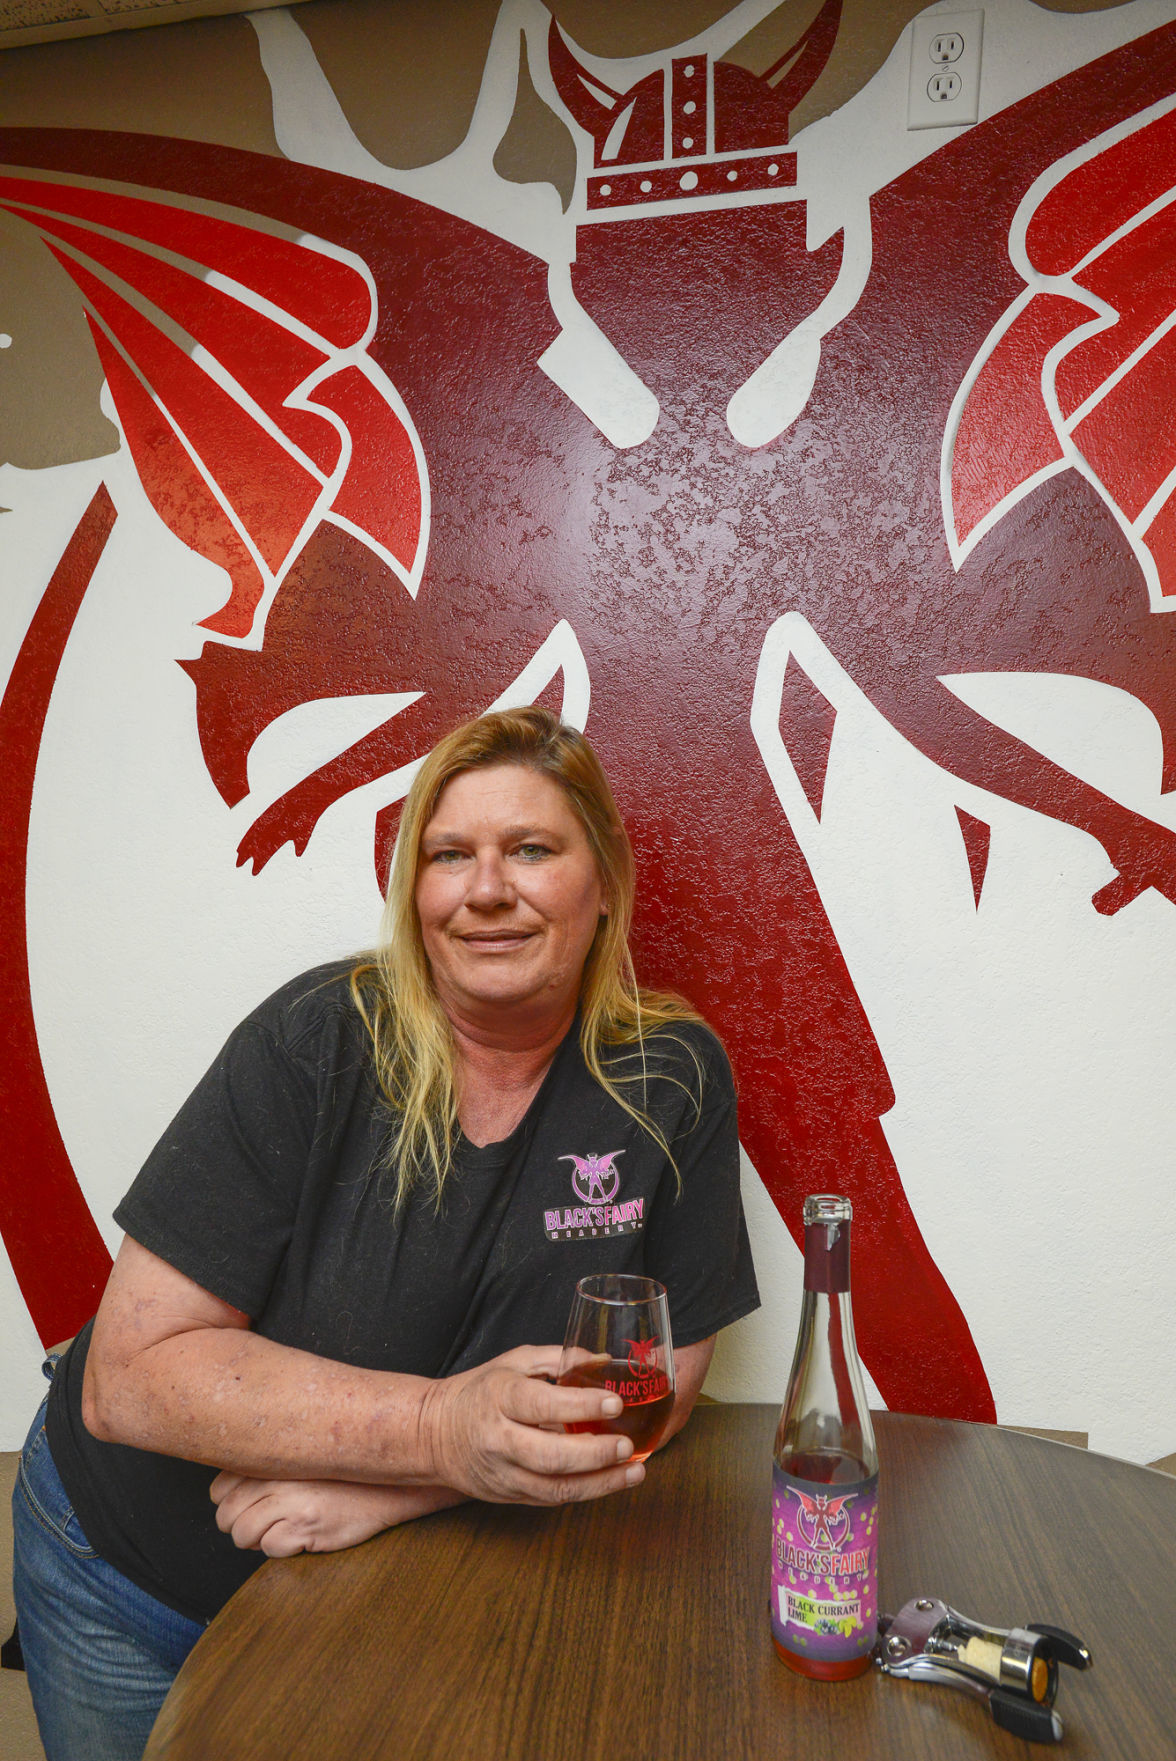 Blacku0027s Fairy Meadery opens in West Columbia